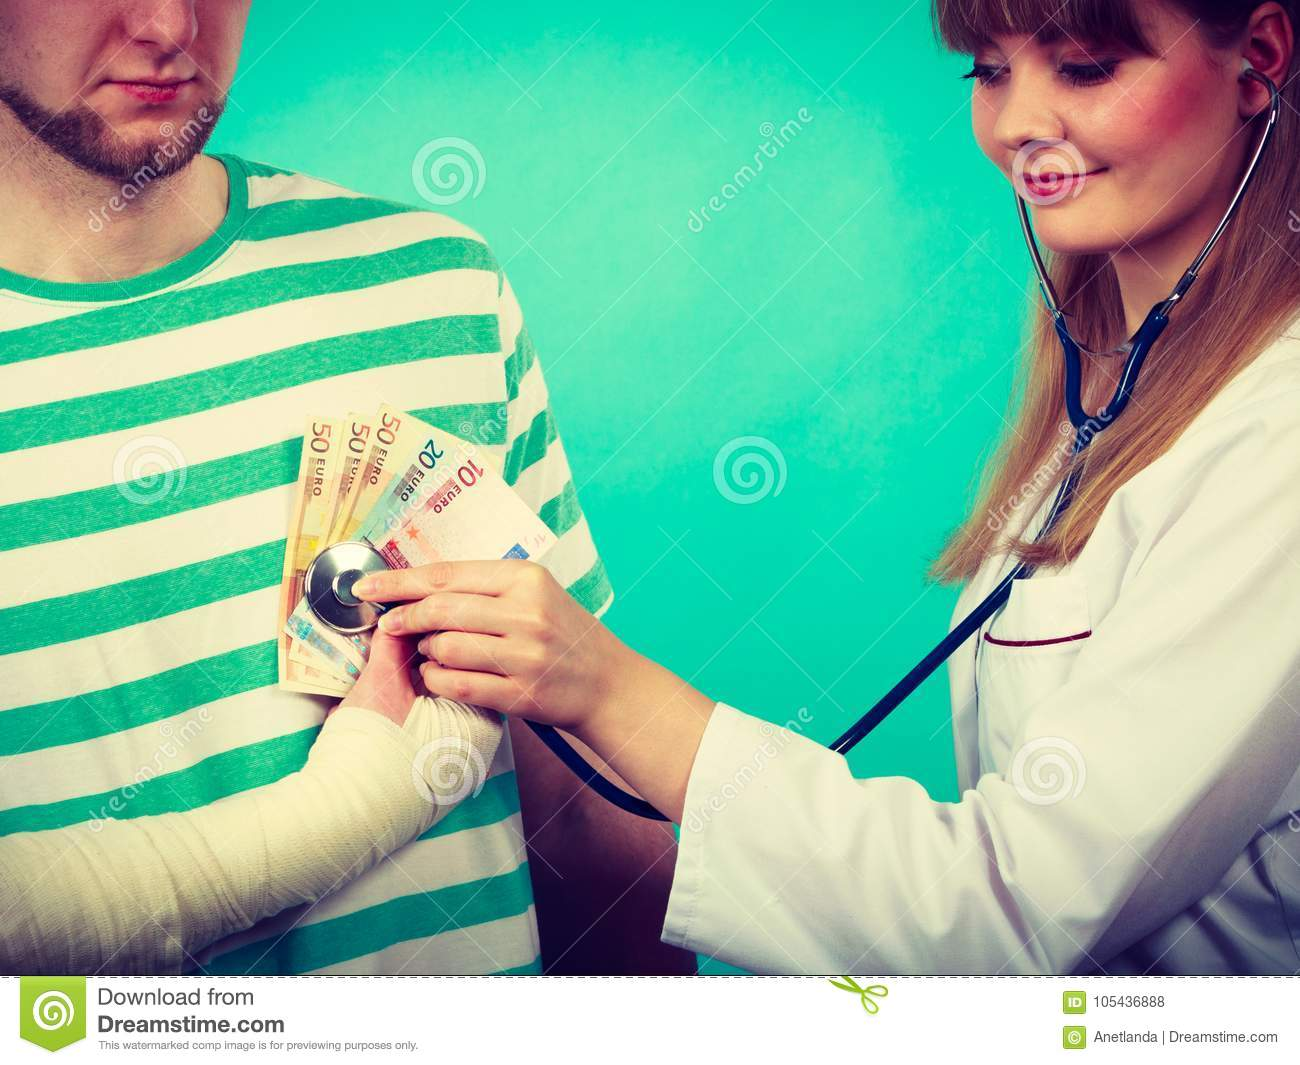 Female doctor checking heart beating.